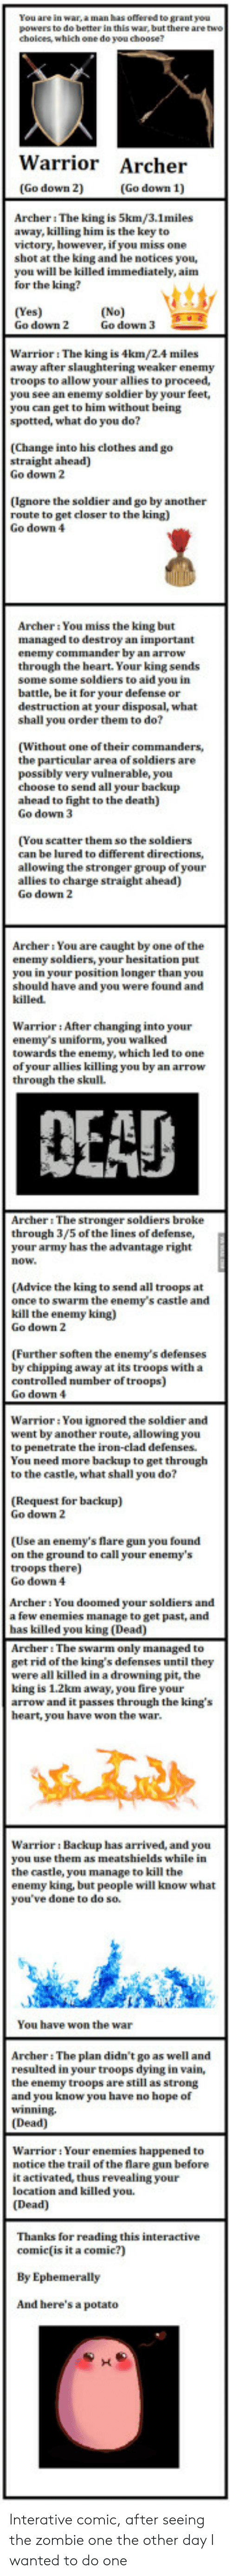 Disposal: You are in war, a man has offered to grant yeu  choices, which one do you choose?  Warrior Archer  (Go down 2)  Archeri The king is 5km/3.1miles  away, killing him is the key to  victory, however, if you miss one  shot at the king and he notices you,  you will be killed immediately, aim  for the king?  (Yes)  Go down 2  Go down 3  Warrior: The king is 4km/2.4 miles  away after slaughtering weaker enemy  troops to allow your allies to proceed,  you see an enemy soldier by your feet,  you can get to him without being  spotted, what do you do?  (Change into his clothes and go  straight ahead)  Go down 2  (Ignore the soldier and go by another  route to get closer to the king)  Go dowm 4  Archer: You miss the king but  managed to destroy an important  enemy commander by an arrow  through the heart. Your king sends  some some soldiers to aid you in  battle, be it for your defense or  destruction at your disposal, what  shall you order them to do?  (Without one of their commanders,  the particular area of soldiers are  possibly very vulnerable, you  choose to send all your backup  ahead to fight to the death)  Go dowm 3  (You scatter them so the soldiers  can be lured to different directions,  allowing the stronger group of your  allies to charge straight ahead)  Go down 2  Archer: You are caught by one of the  enemy soldiers, your hesitation put  you in your position longer than you  should have and you were found and  killed  Warrior: After changing into your  enemy's uniform, you walked  towards the enemy, which led to one  of your allies killing you by an arrow  through the skull  EAD  Archeri The stronger soldiers broke  through 3/5 of the lines of defense,  your army has the advantage right  Advice the king to send all troops at  once to swarm the enemy's castle and  kill the enemy king)  Go down 2  (Further soften the enemy's defenses  by chipping away at its troops with a  controlled number of troops)  Go down 4  Warrior:You ignored the soldier and  went 